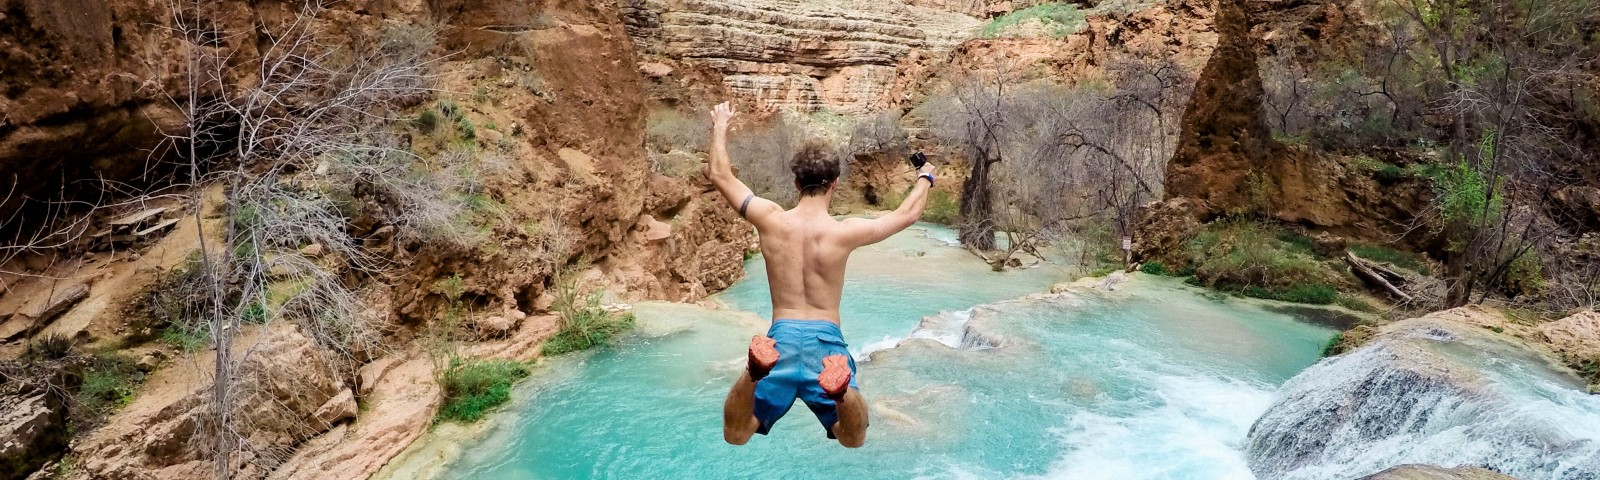 Topless Man Jumping on Body of Water